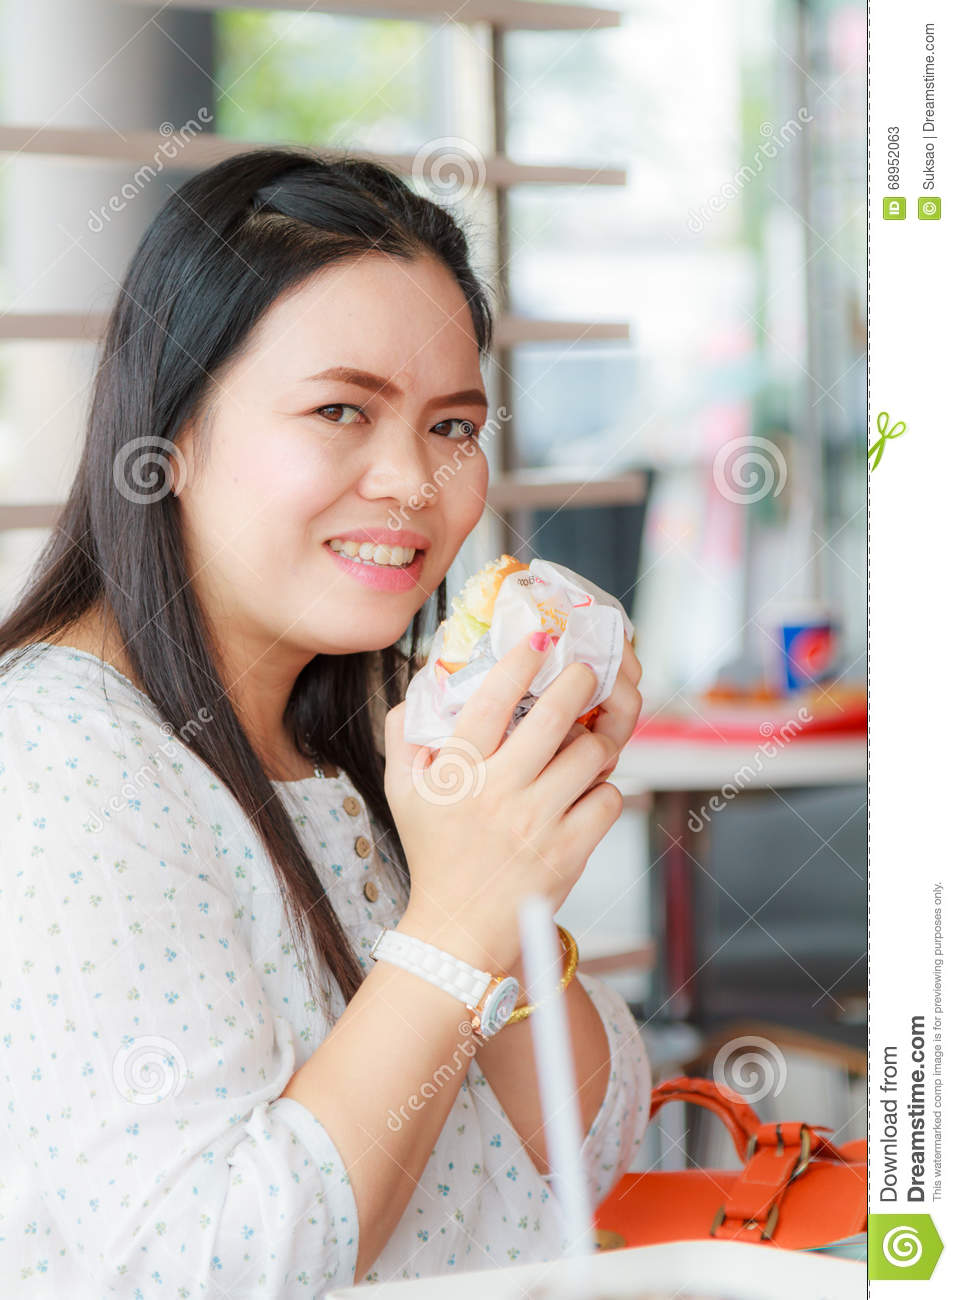 Girl Eat Hamburger